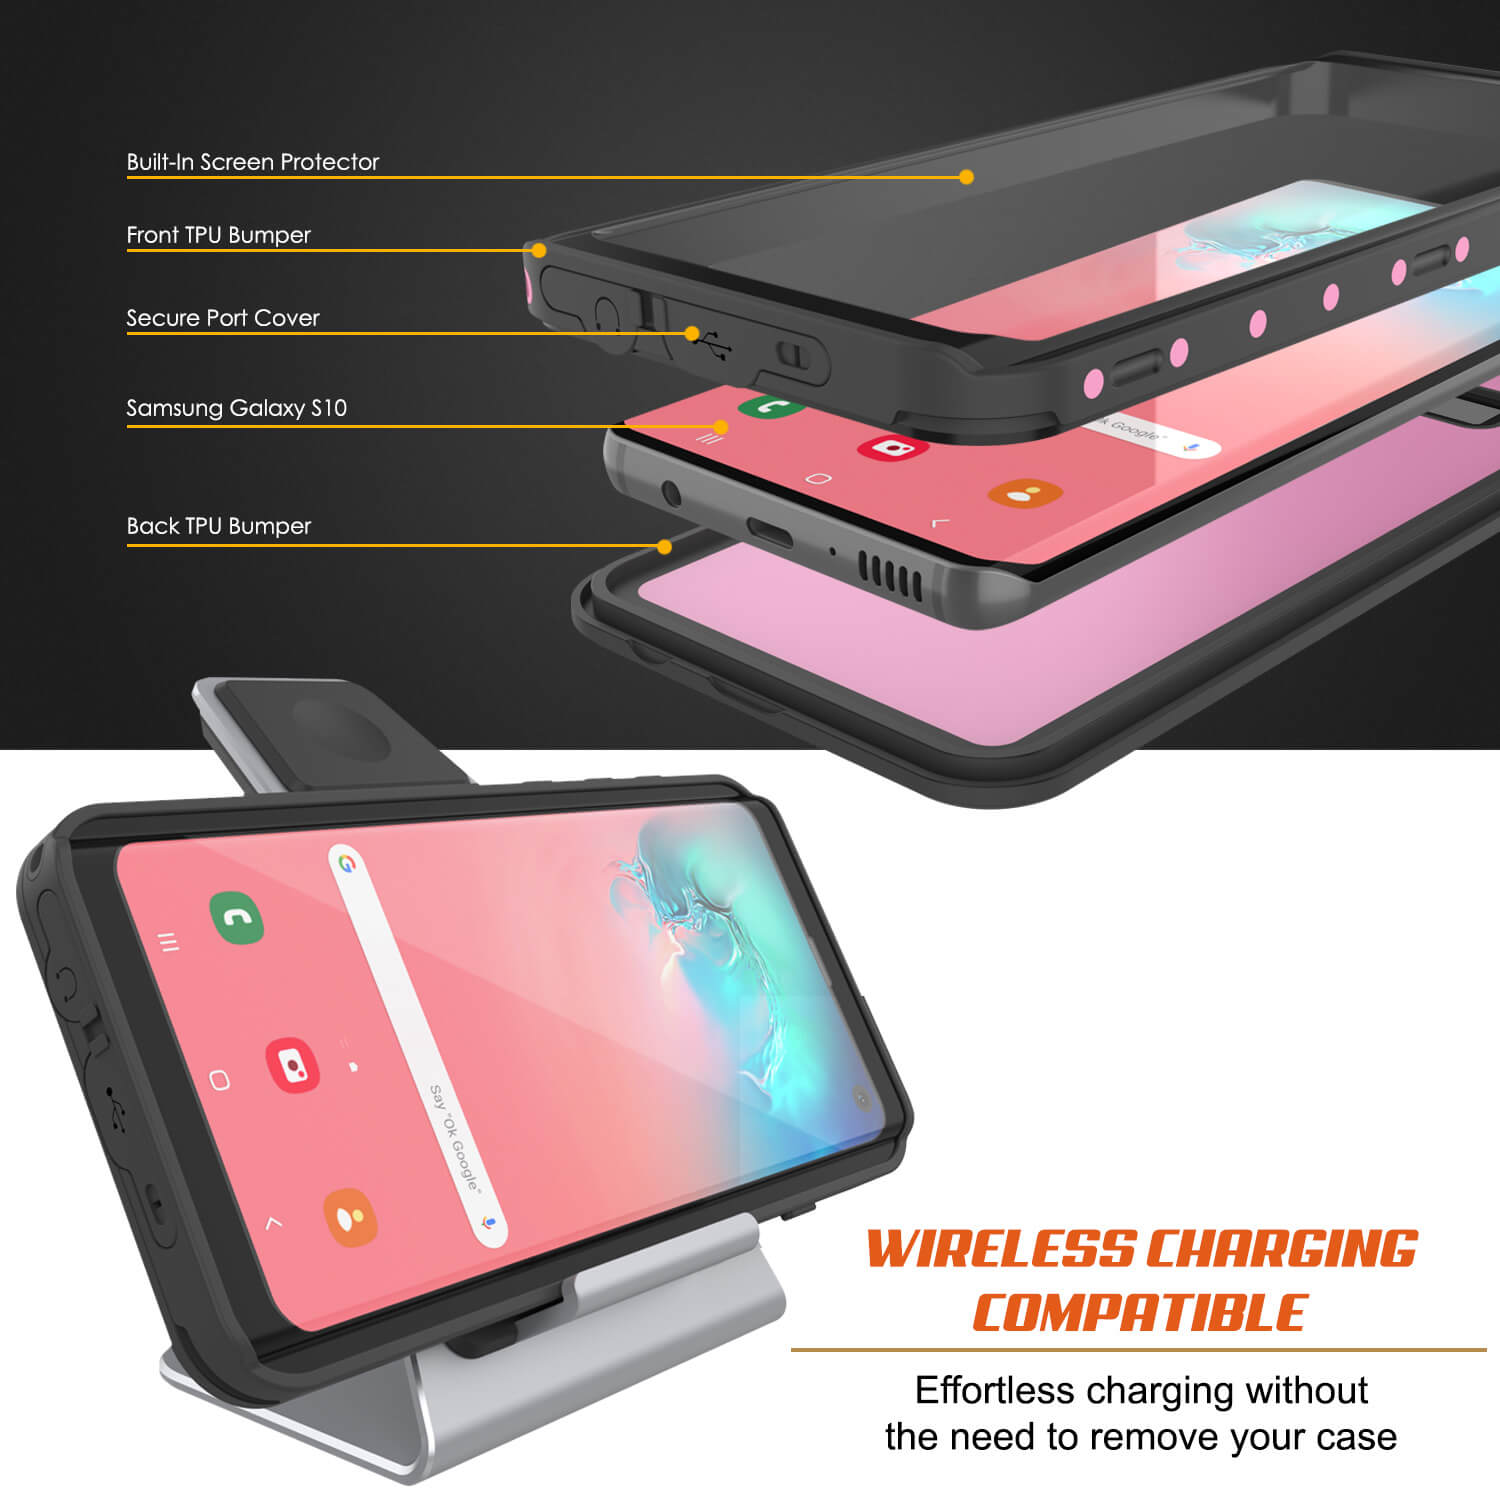 Galaxy S10 Waterproof Case PunkCase StudStar Pink Thin 6.6ft Underwater IP68 Shock/Snow Proof